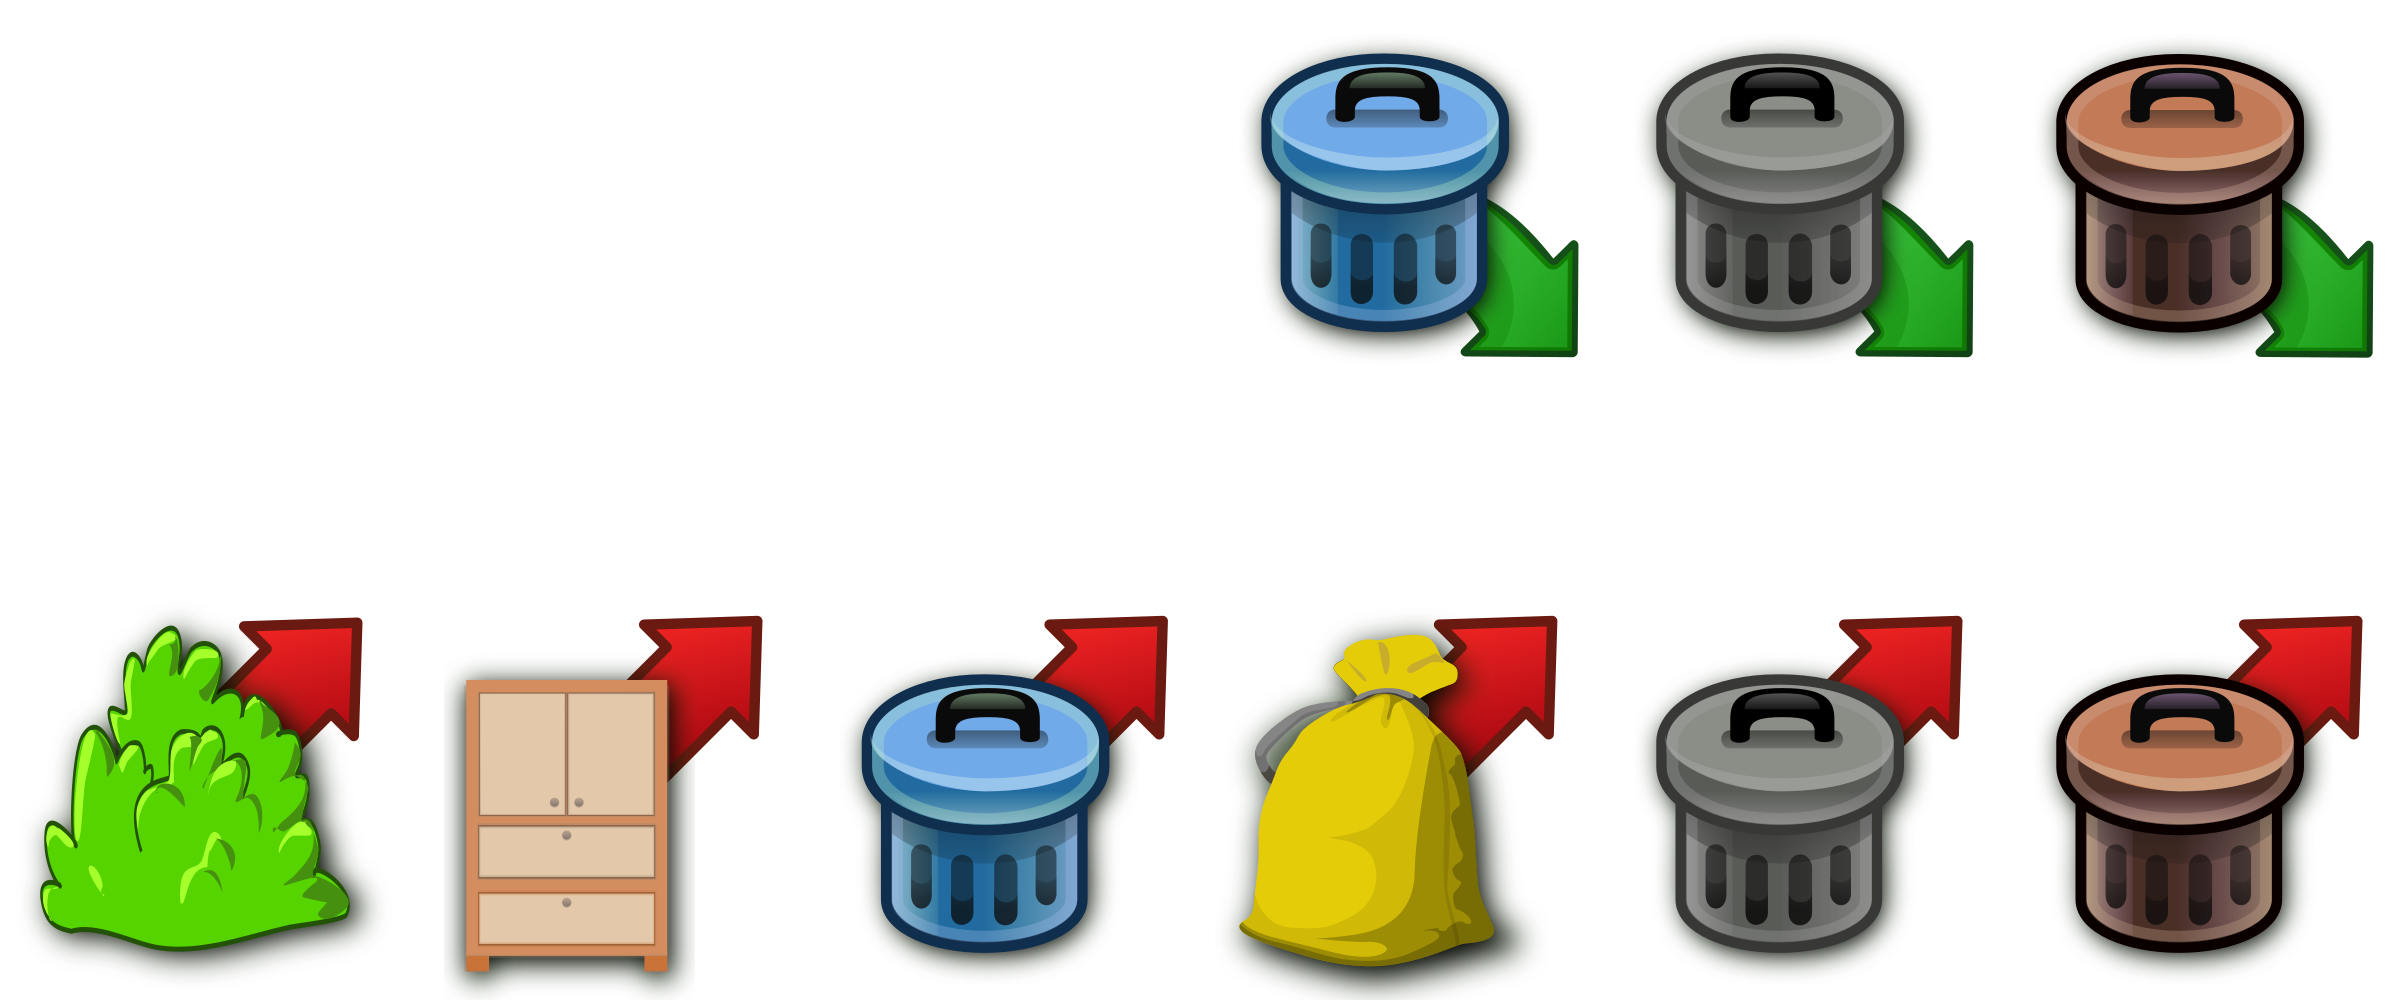 Trash icons by Moini